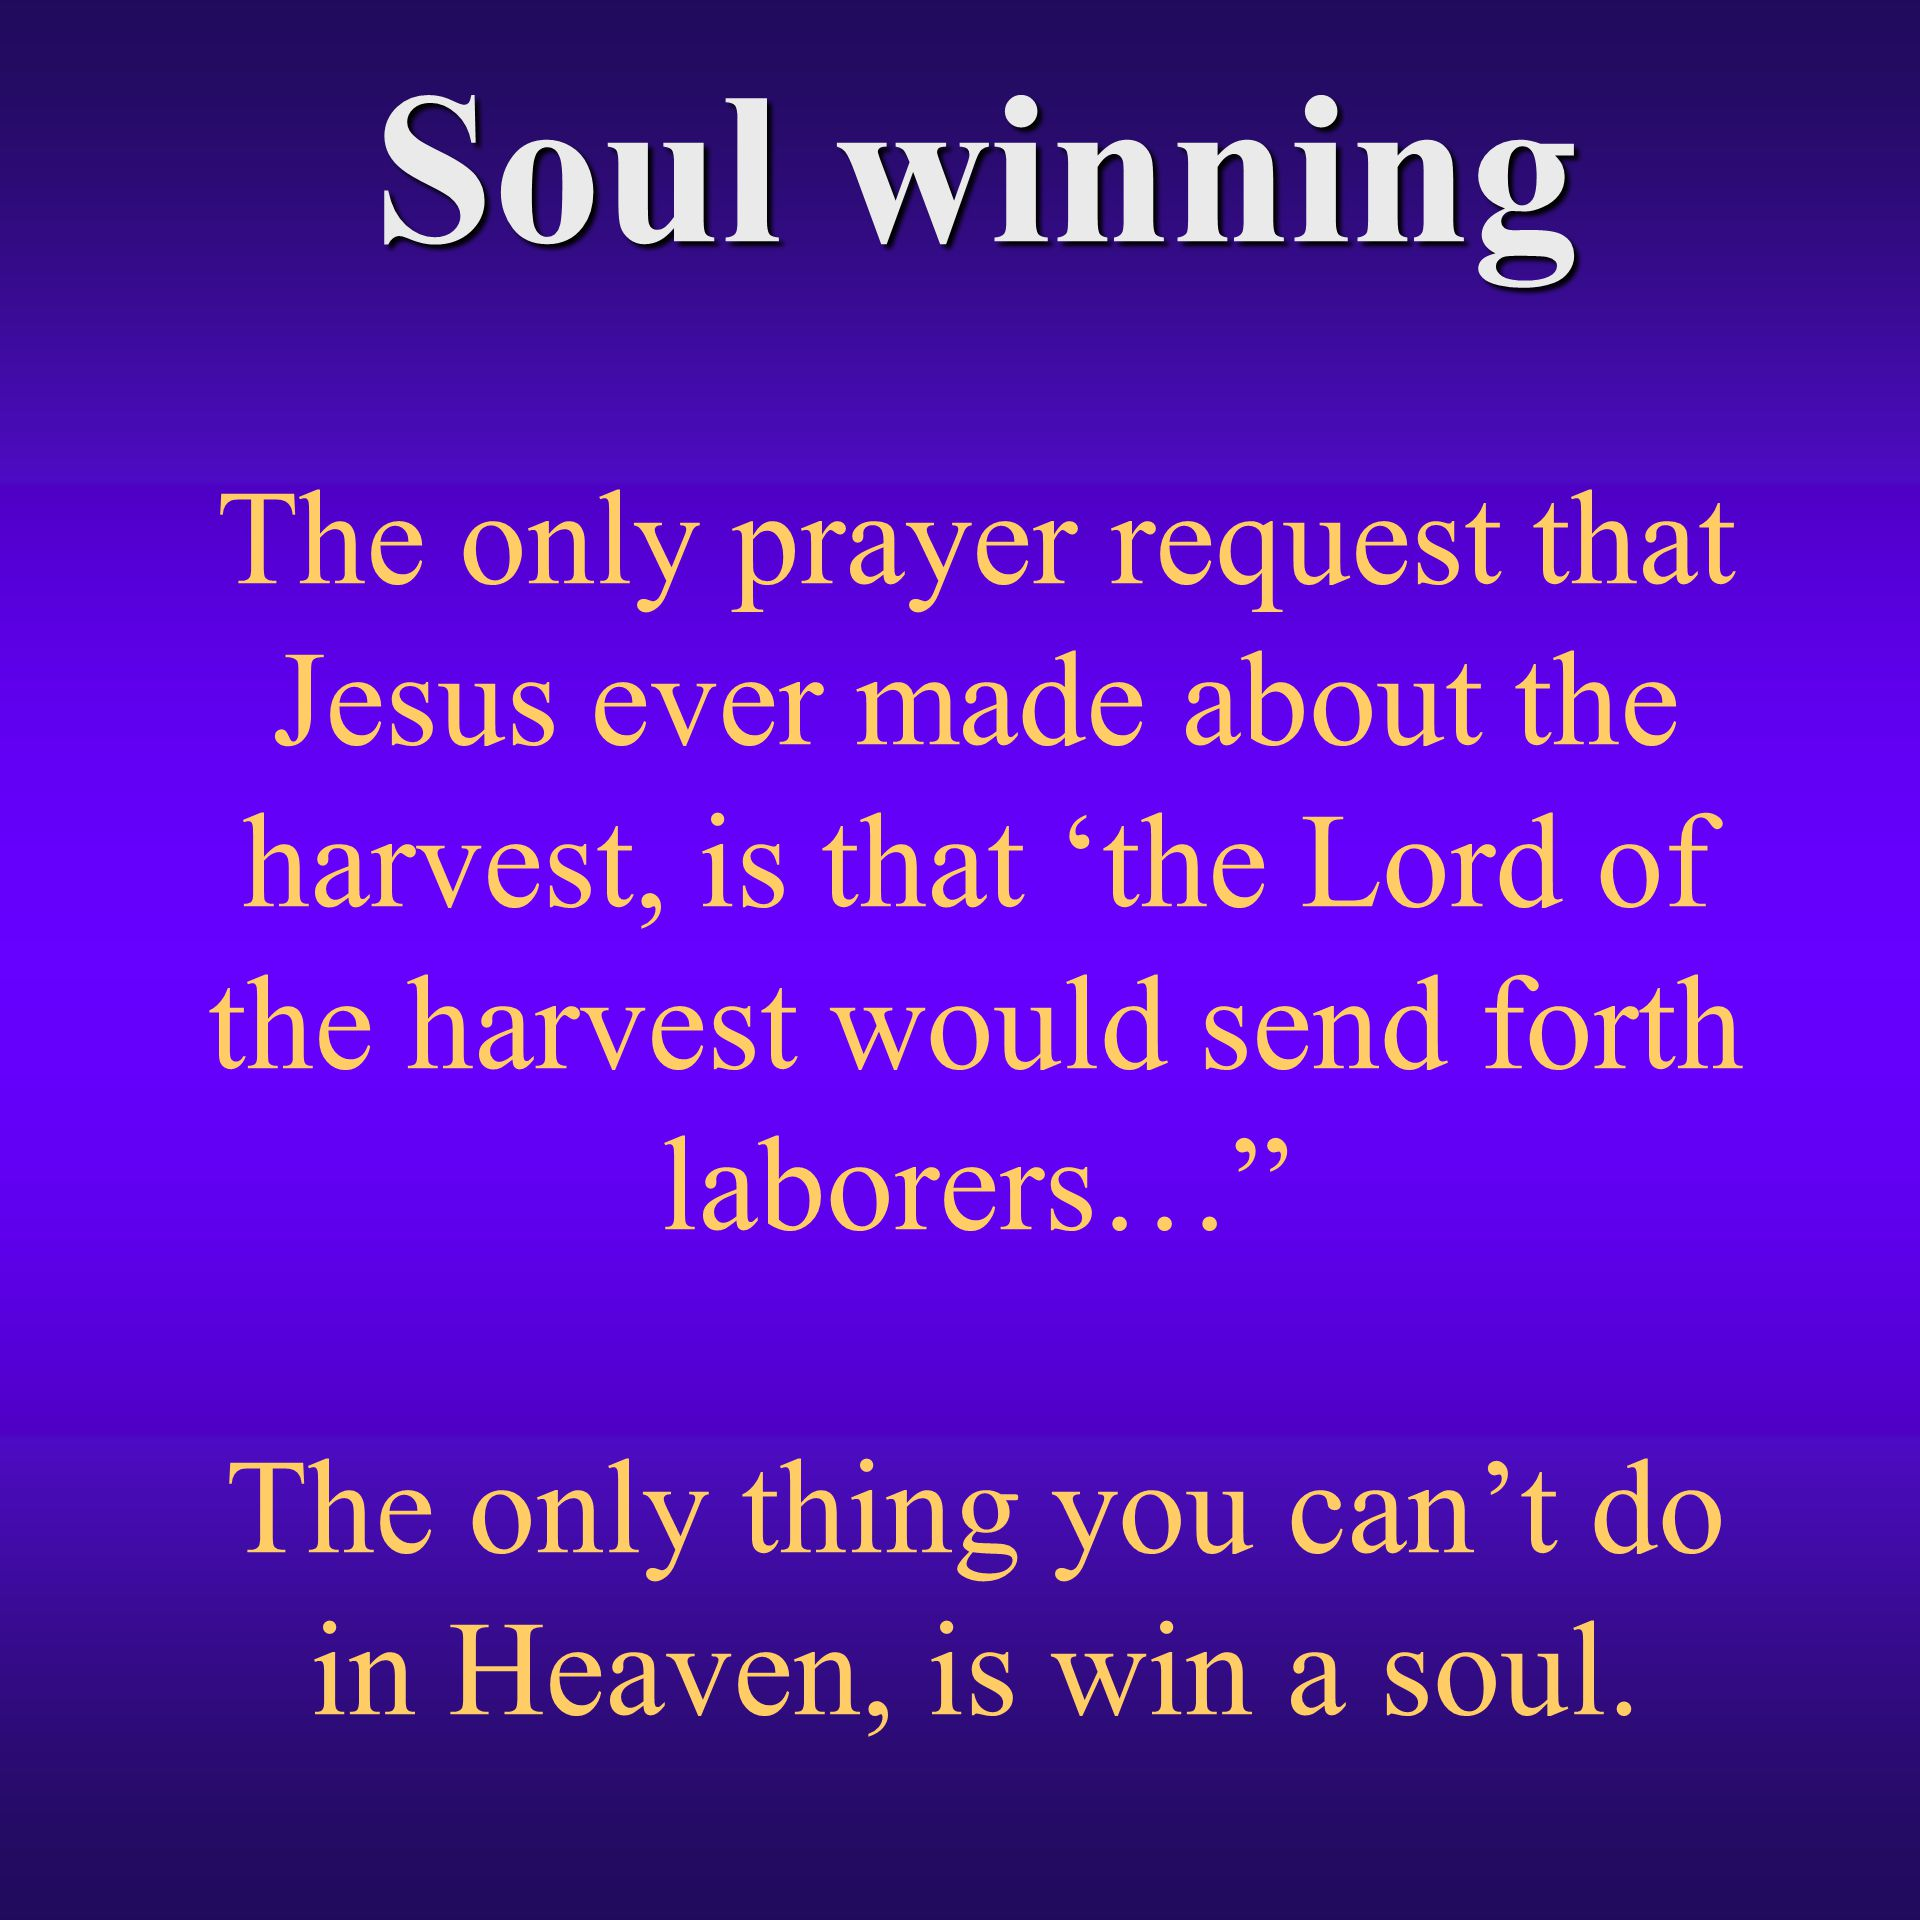 Soul winning The only prayer request that Jesus ever made about the harvest, is that 'the Lord of the harvest would send forth laborers… The only thing you can't do in Heaven, is win a soul.